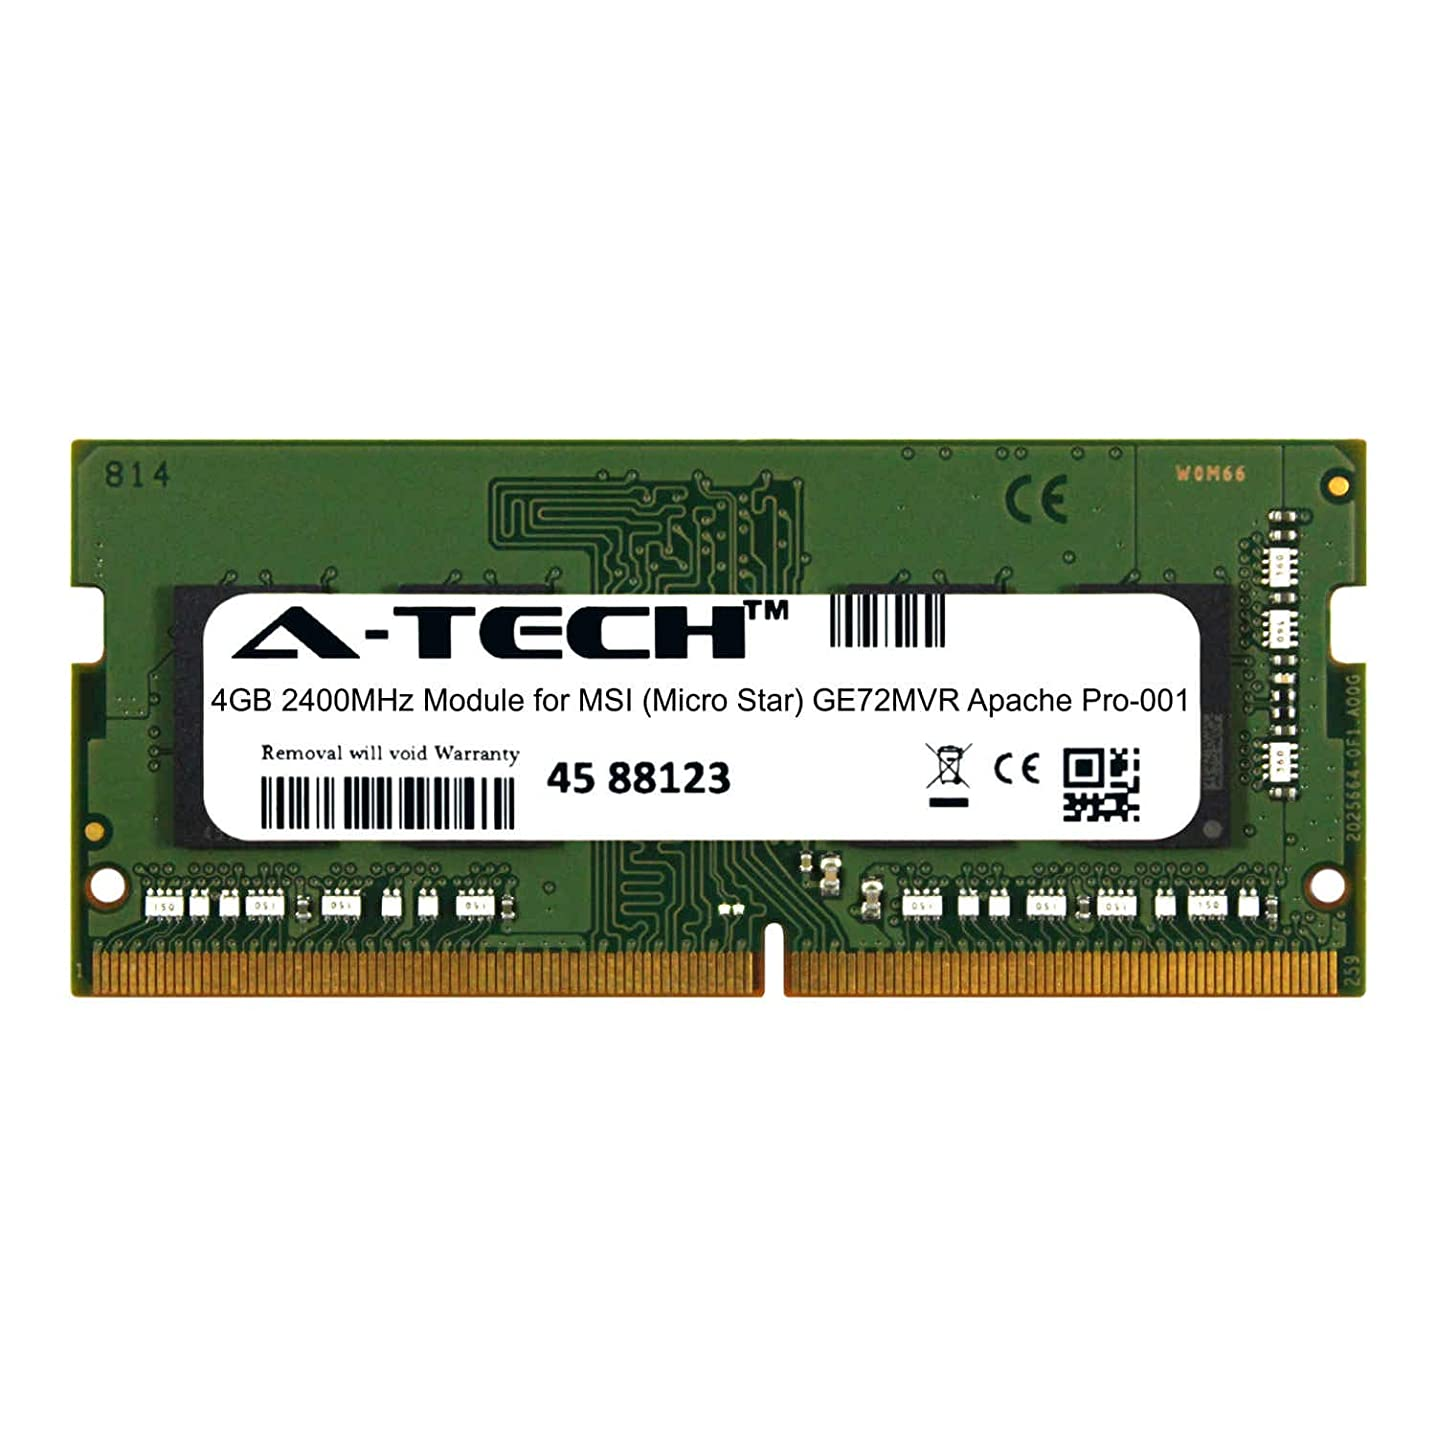 A-Tech 4GB Module for MSI (Micro Star) GE72MVR Apache Pro-001 Laptop & Notebook Compatible DDR4 2400Mhz Memory Ram (ATMS368234A25824X1)